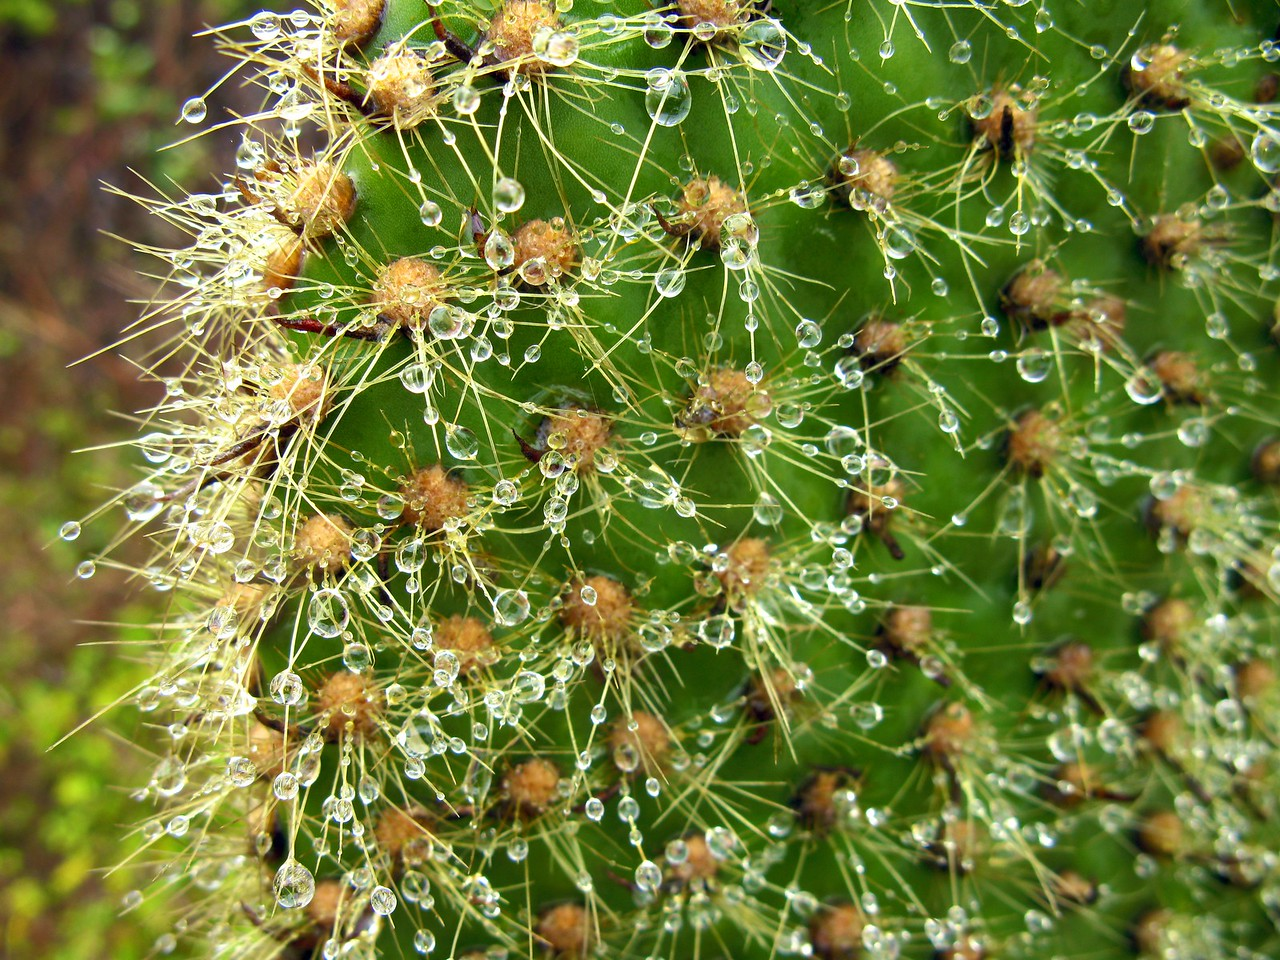 Wet cactus (highlands of Isabela). Published in the Spring/Summer 2012 issue of Destinations magazine (New Zealand).